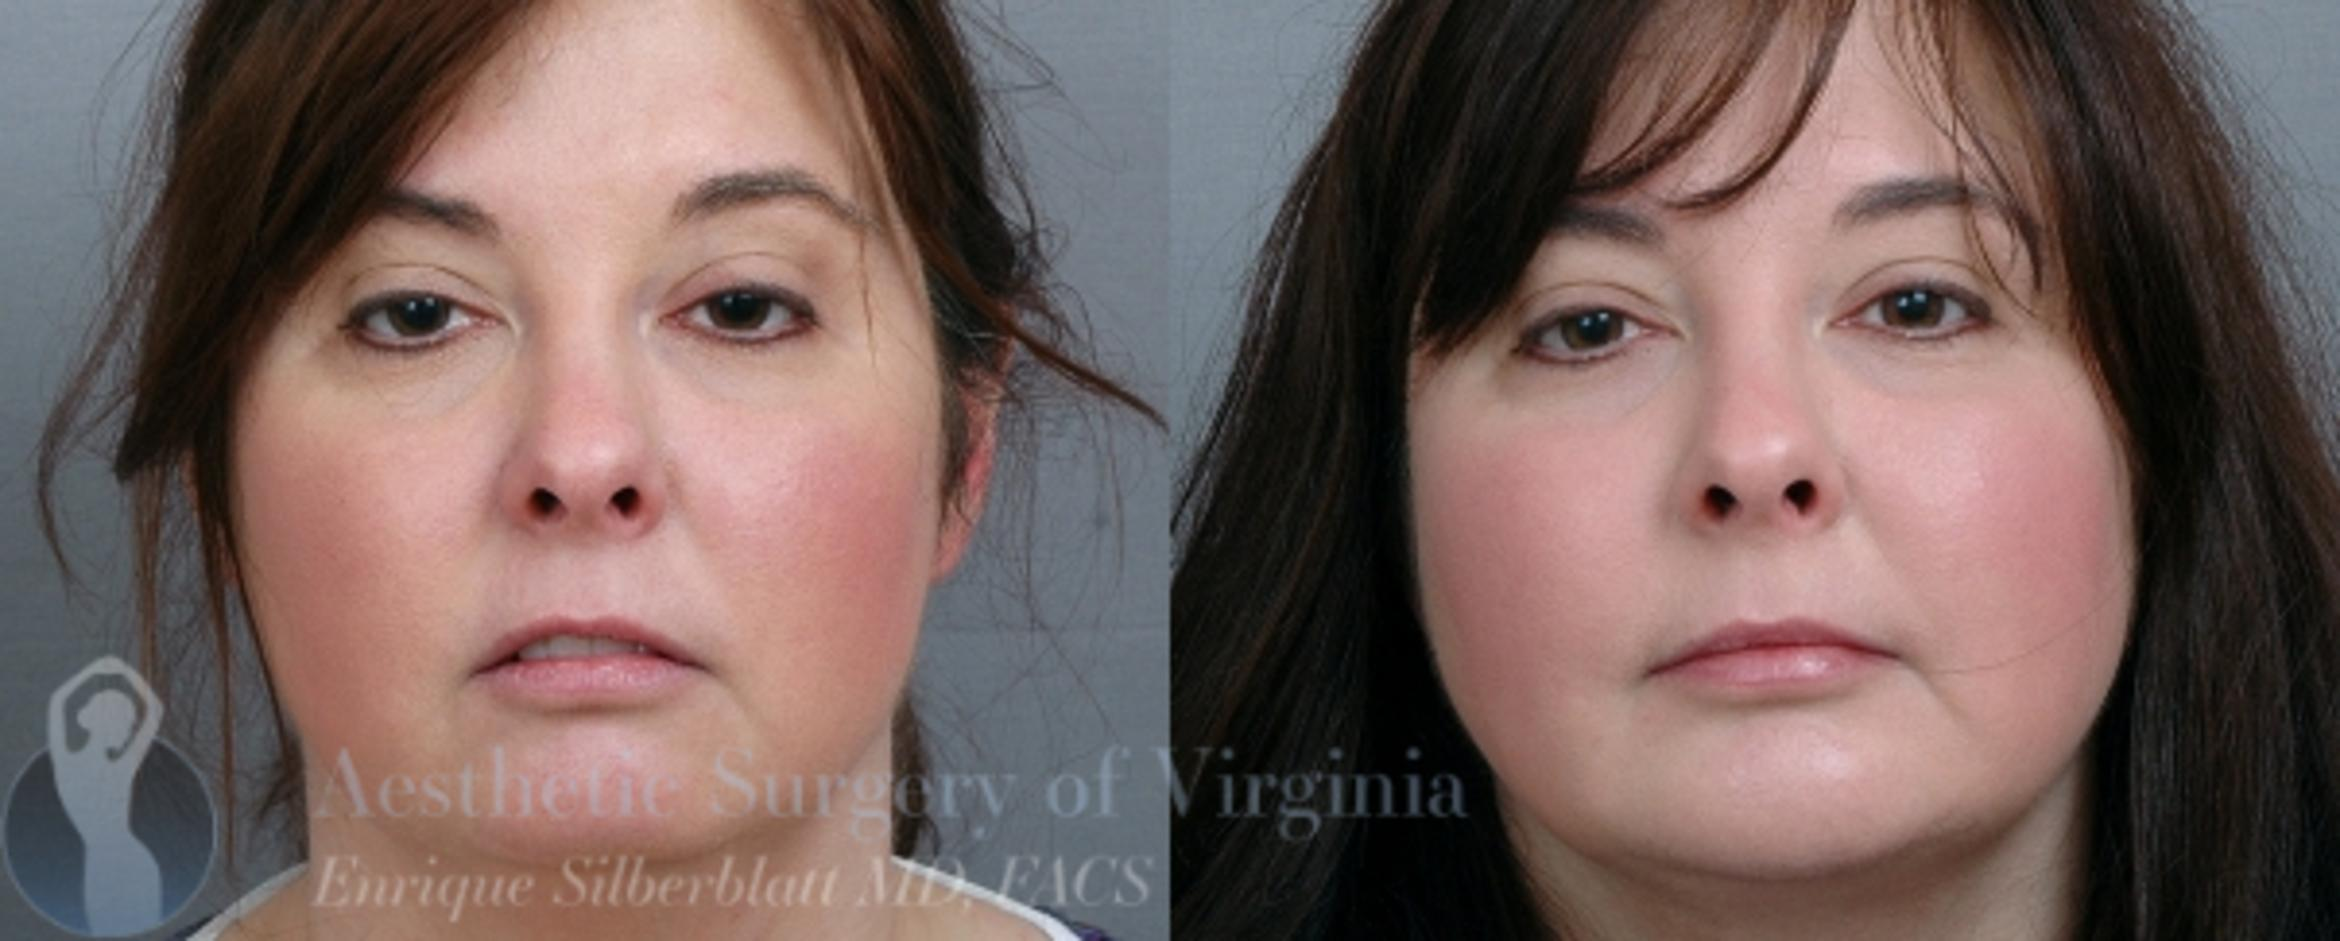 Chin Implant Case 50 Before & After View #1 | Roanoke, VA | Aesthetic Surgery of Virginia: Enrique Silberblatt, MD